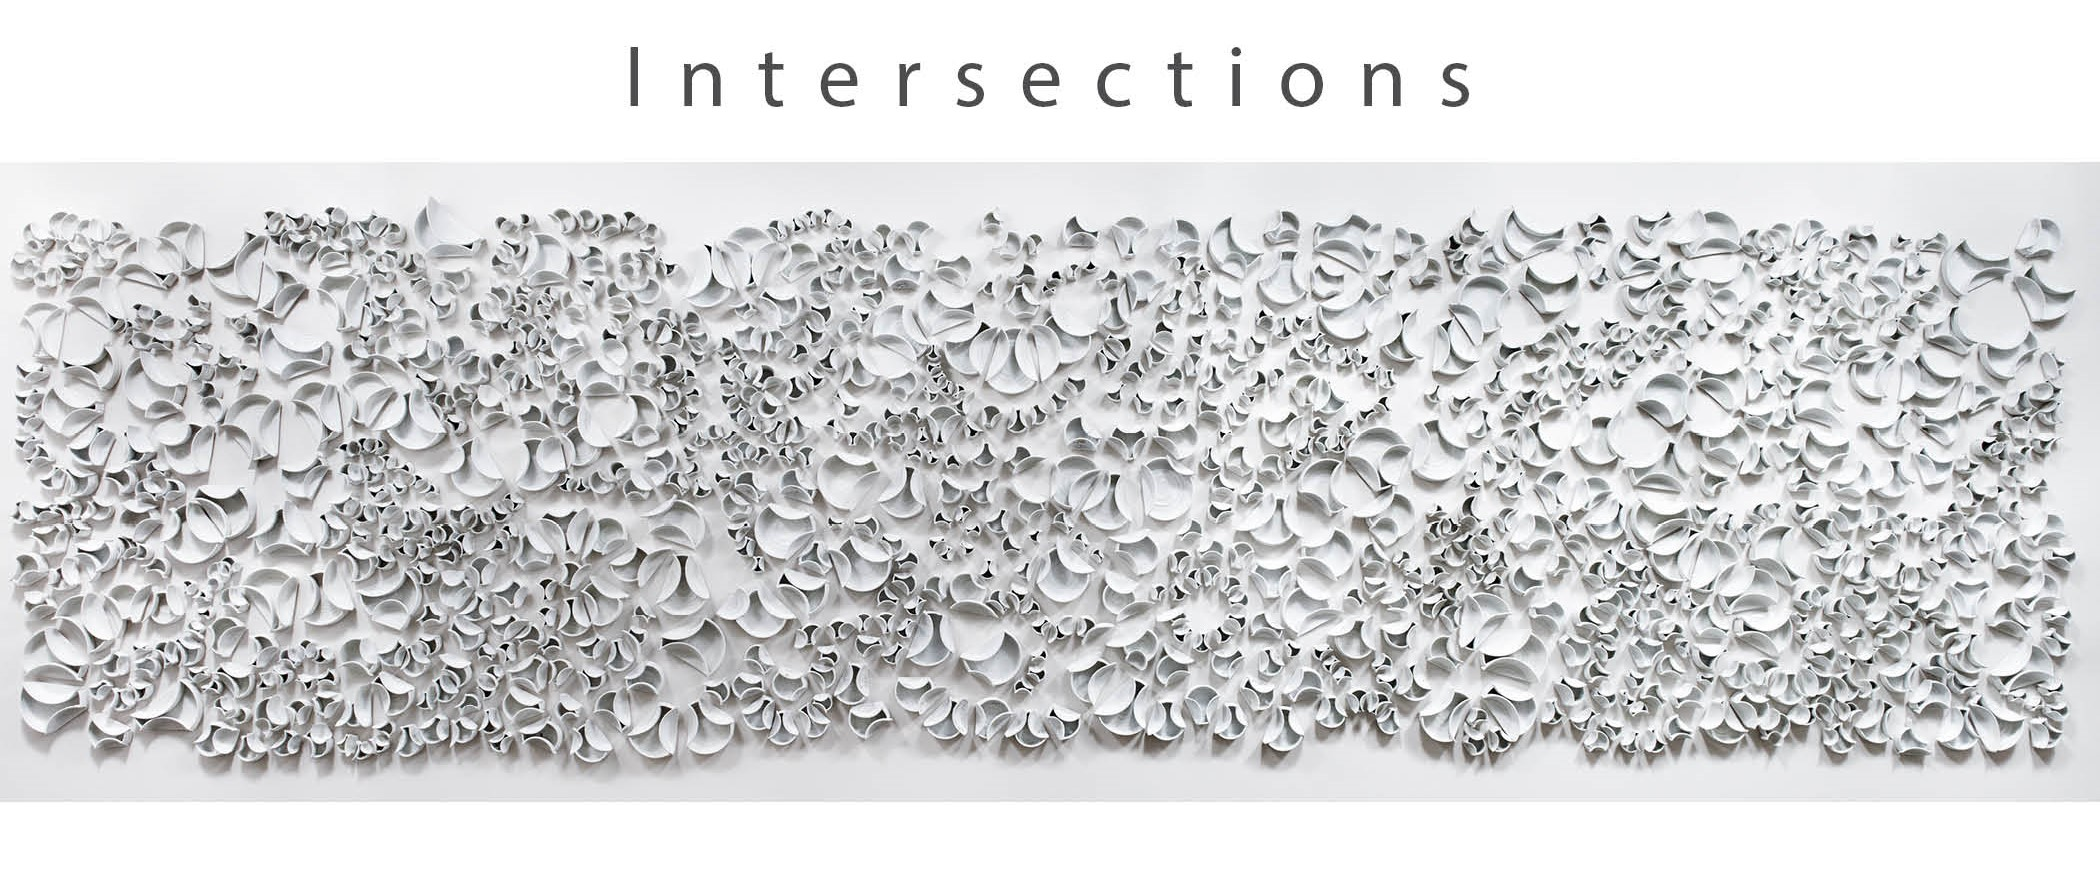 Create New Intersections: Blending Art with Community